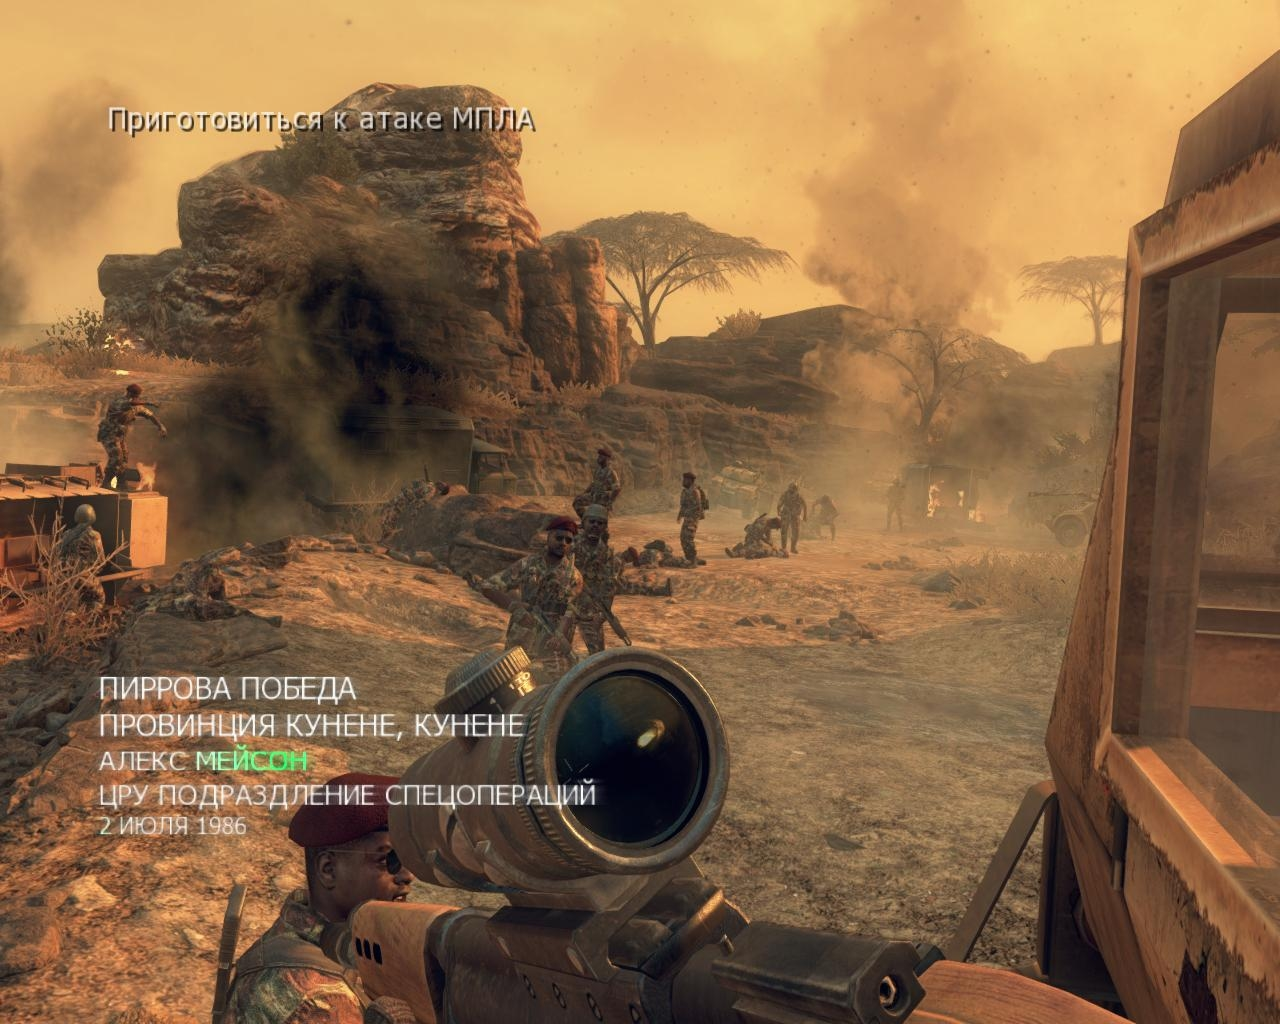 Call of duty black ops 1 free download pc game